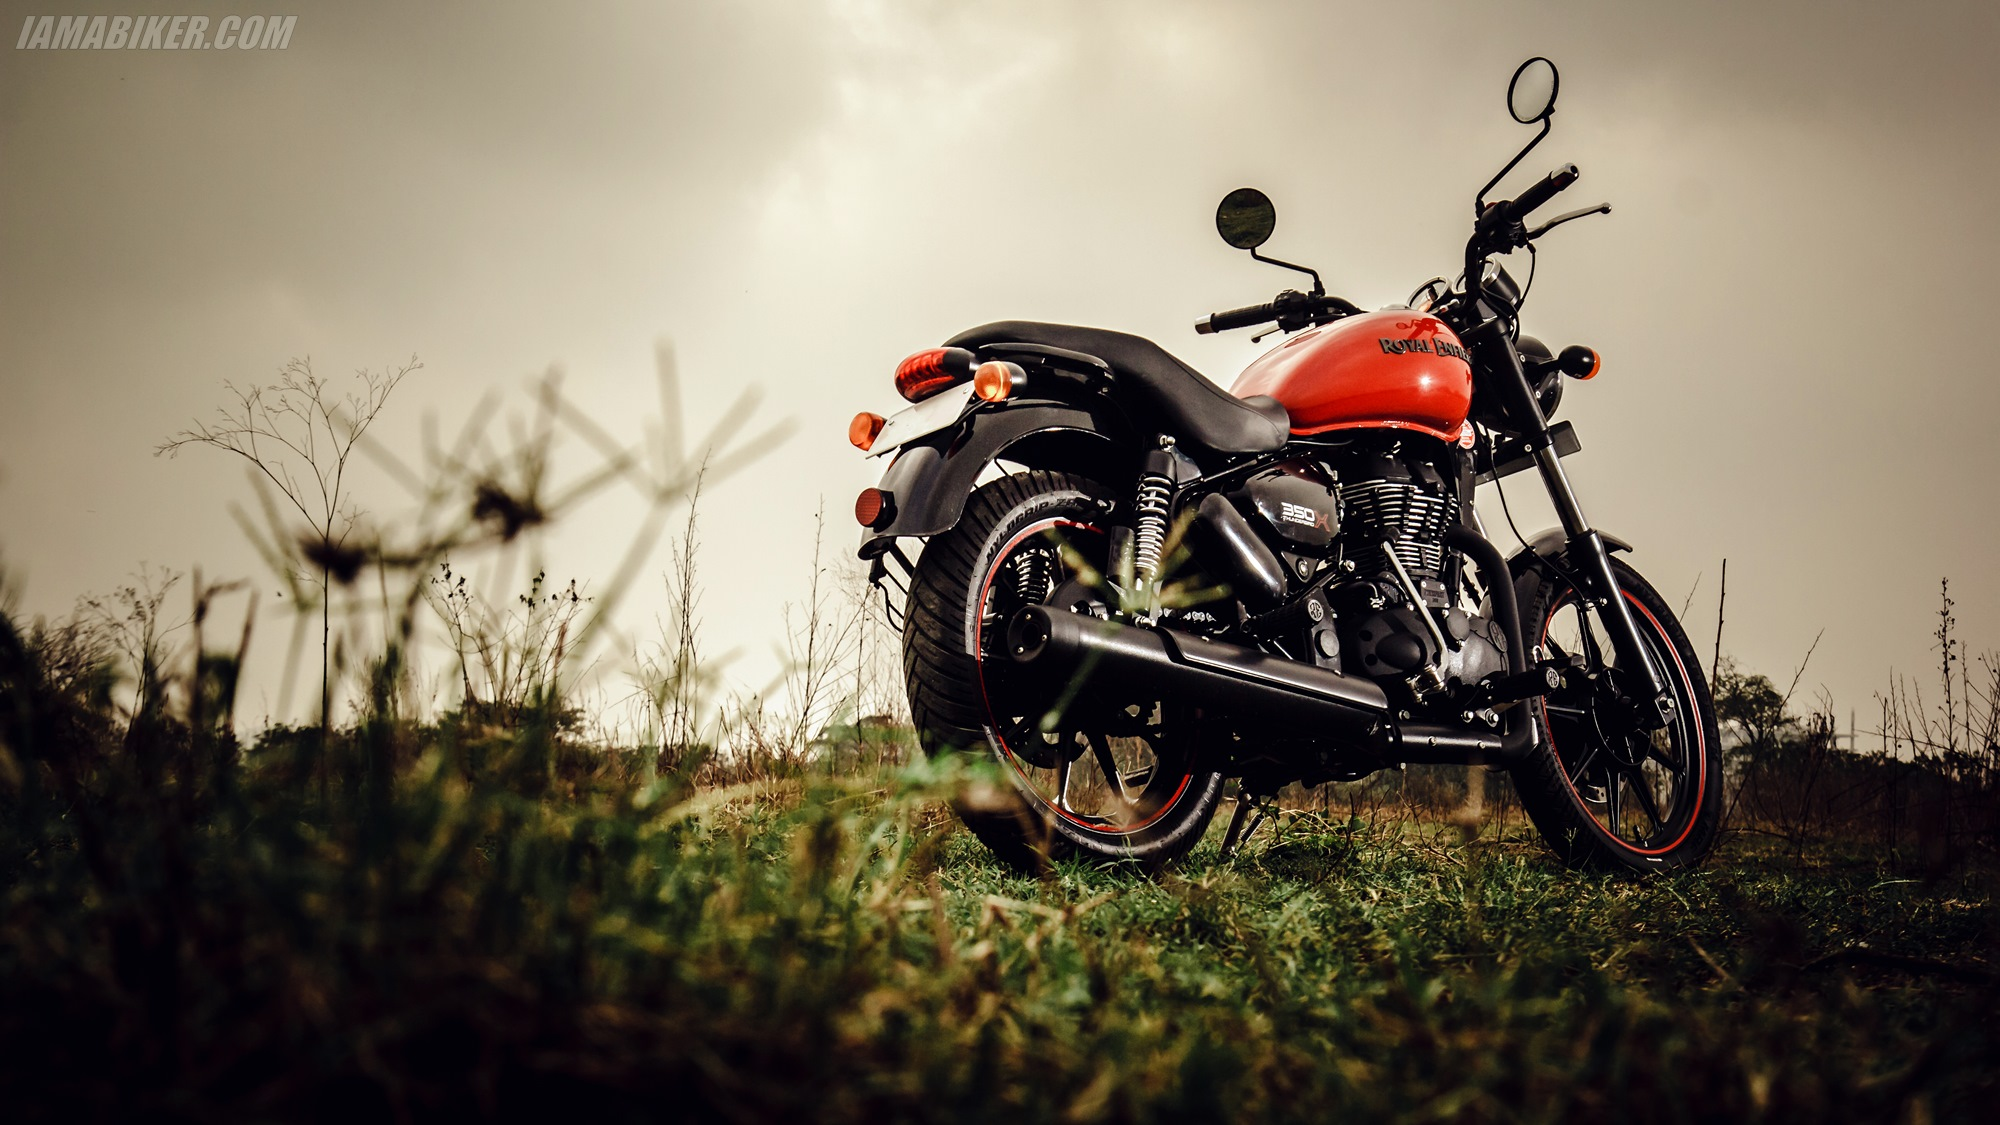 royal enfield thunderbird 350x hd wallpapers iamabiker. Black Bedroom Furniture Sets. Home Design Ideas